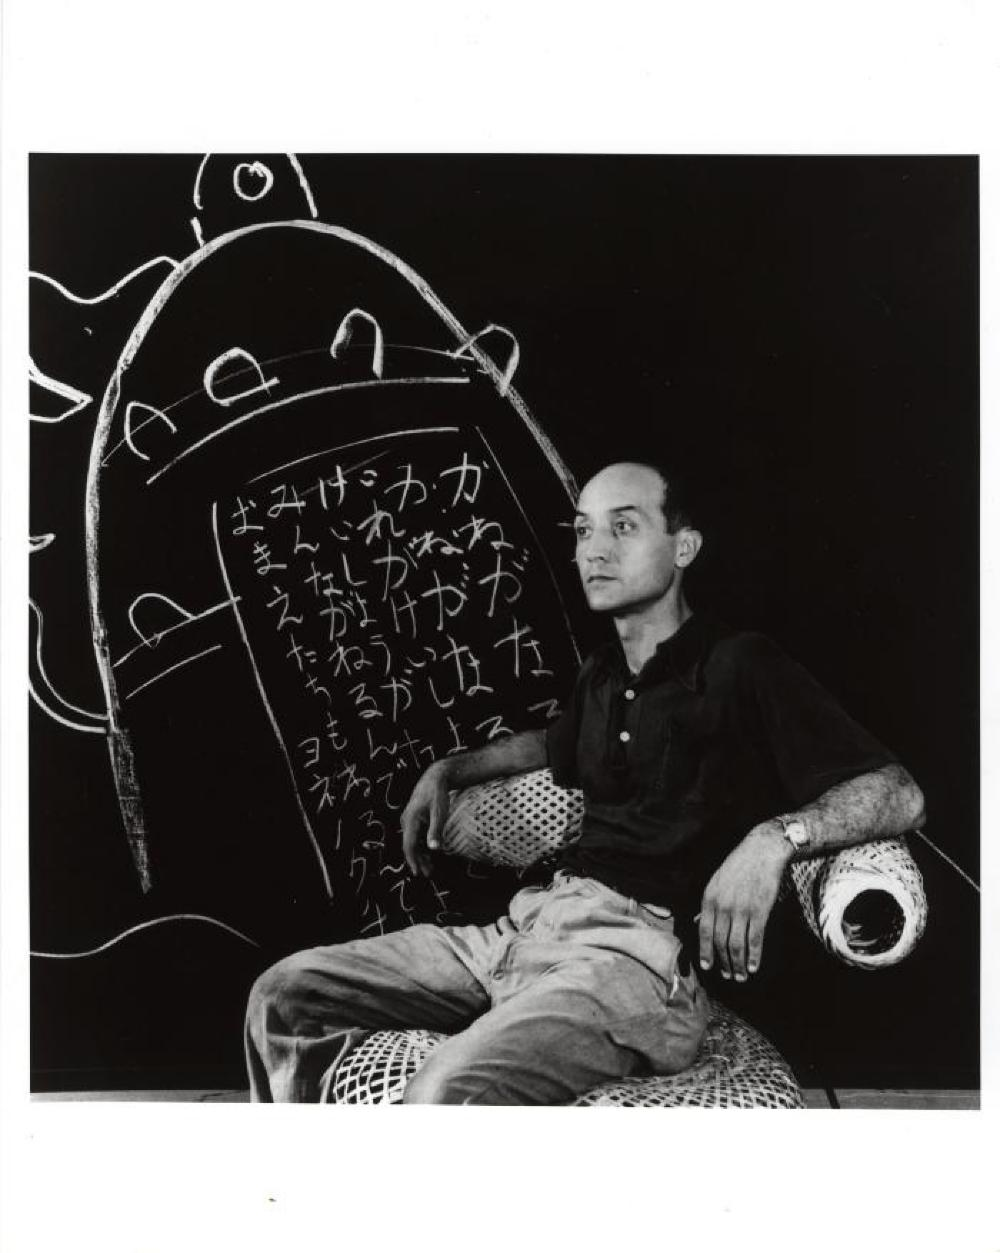 Isamu Noguchi seated in Basket Chair, with writing of his father's poem at the Mitsukoshi Dept Store exhibition, Aug. 1950.